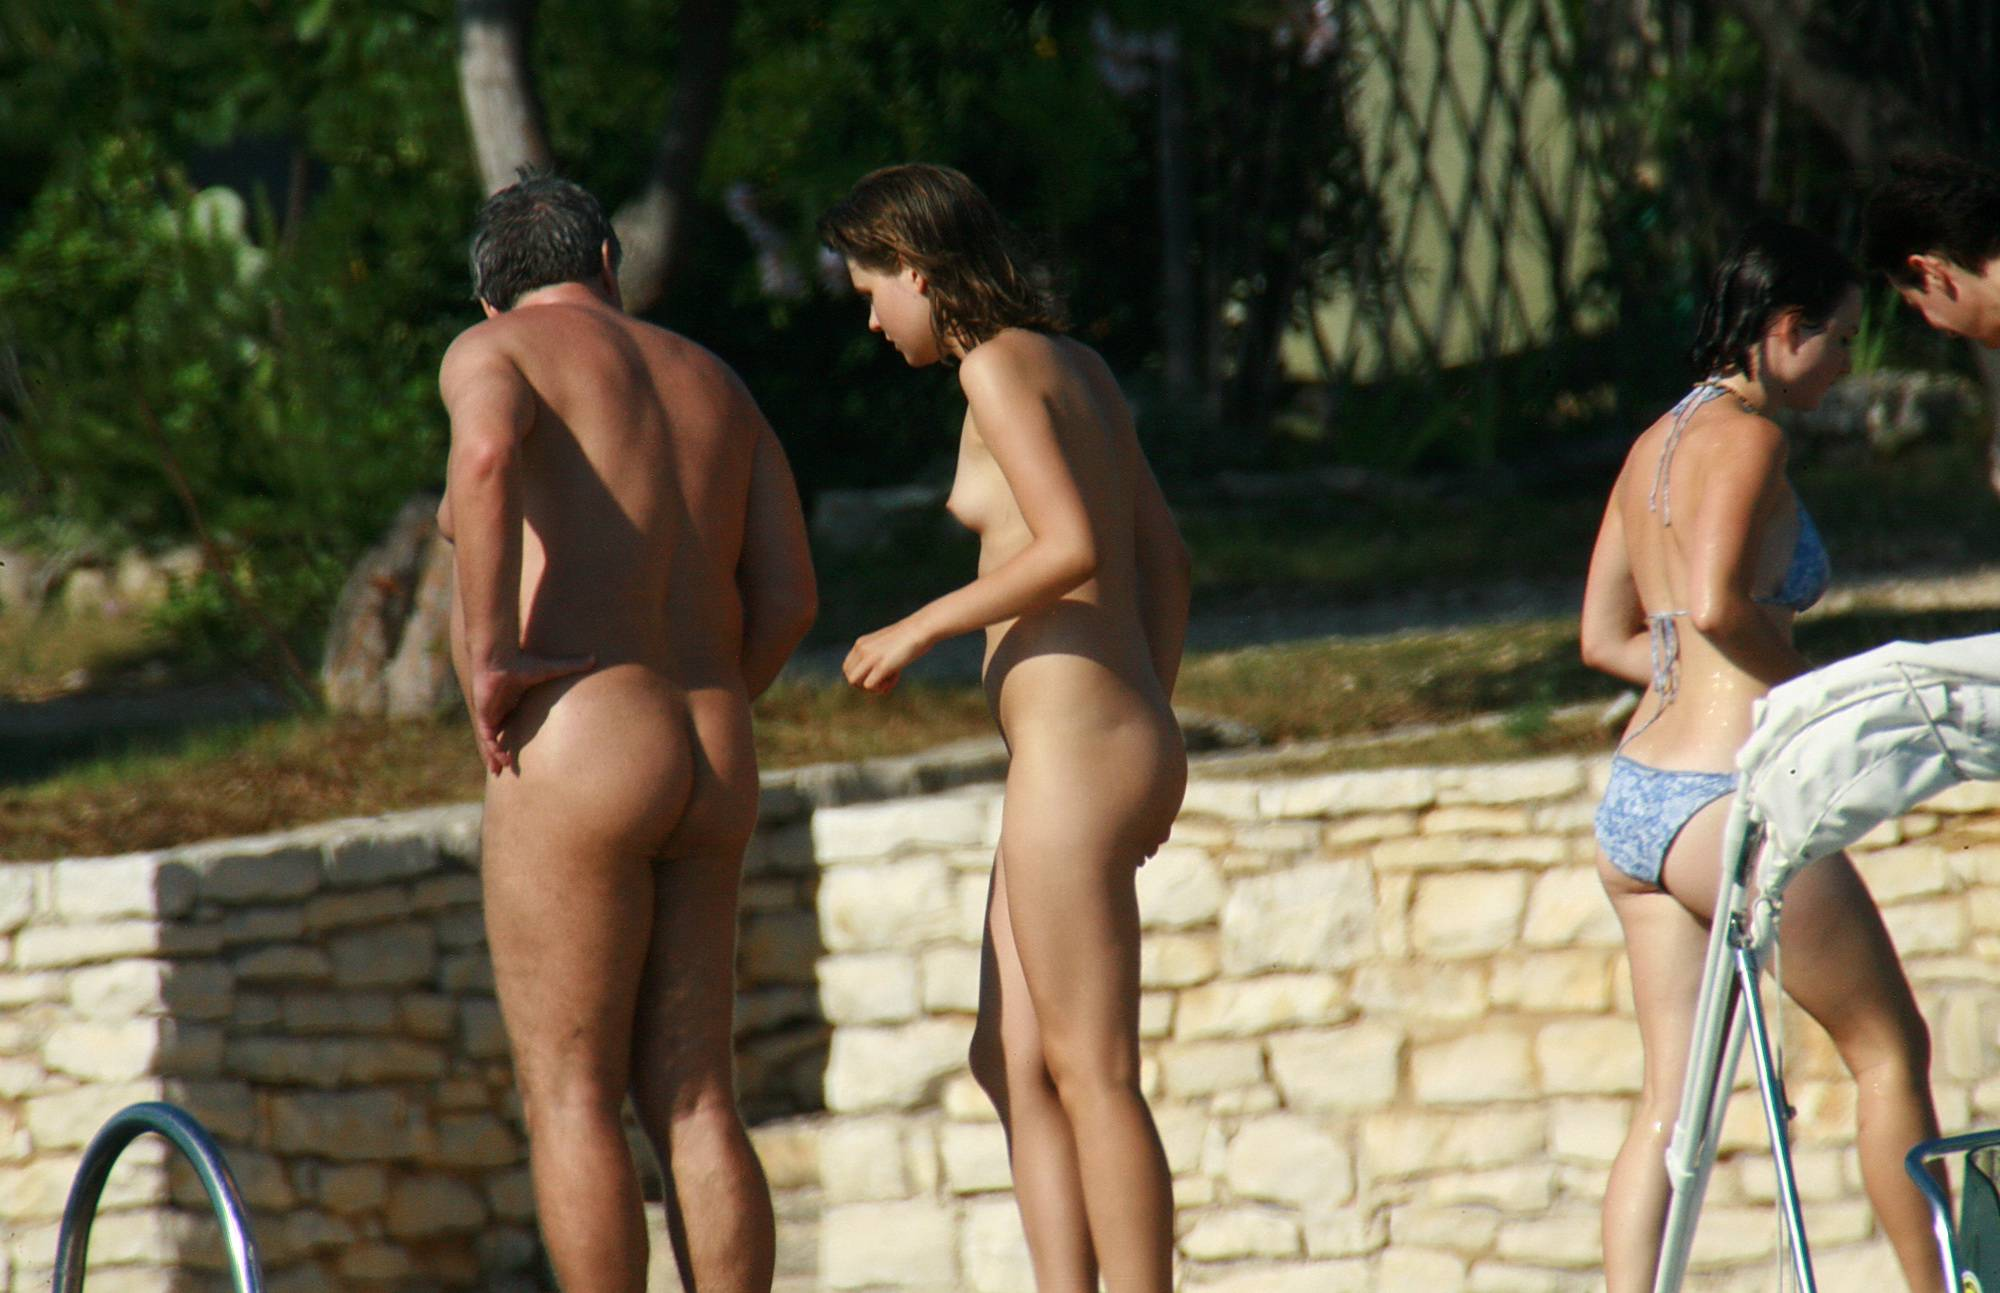 Nudist Pictures Strolling On The Veranda - 1